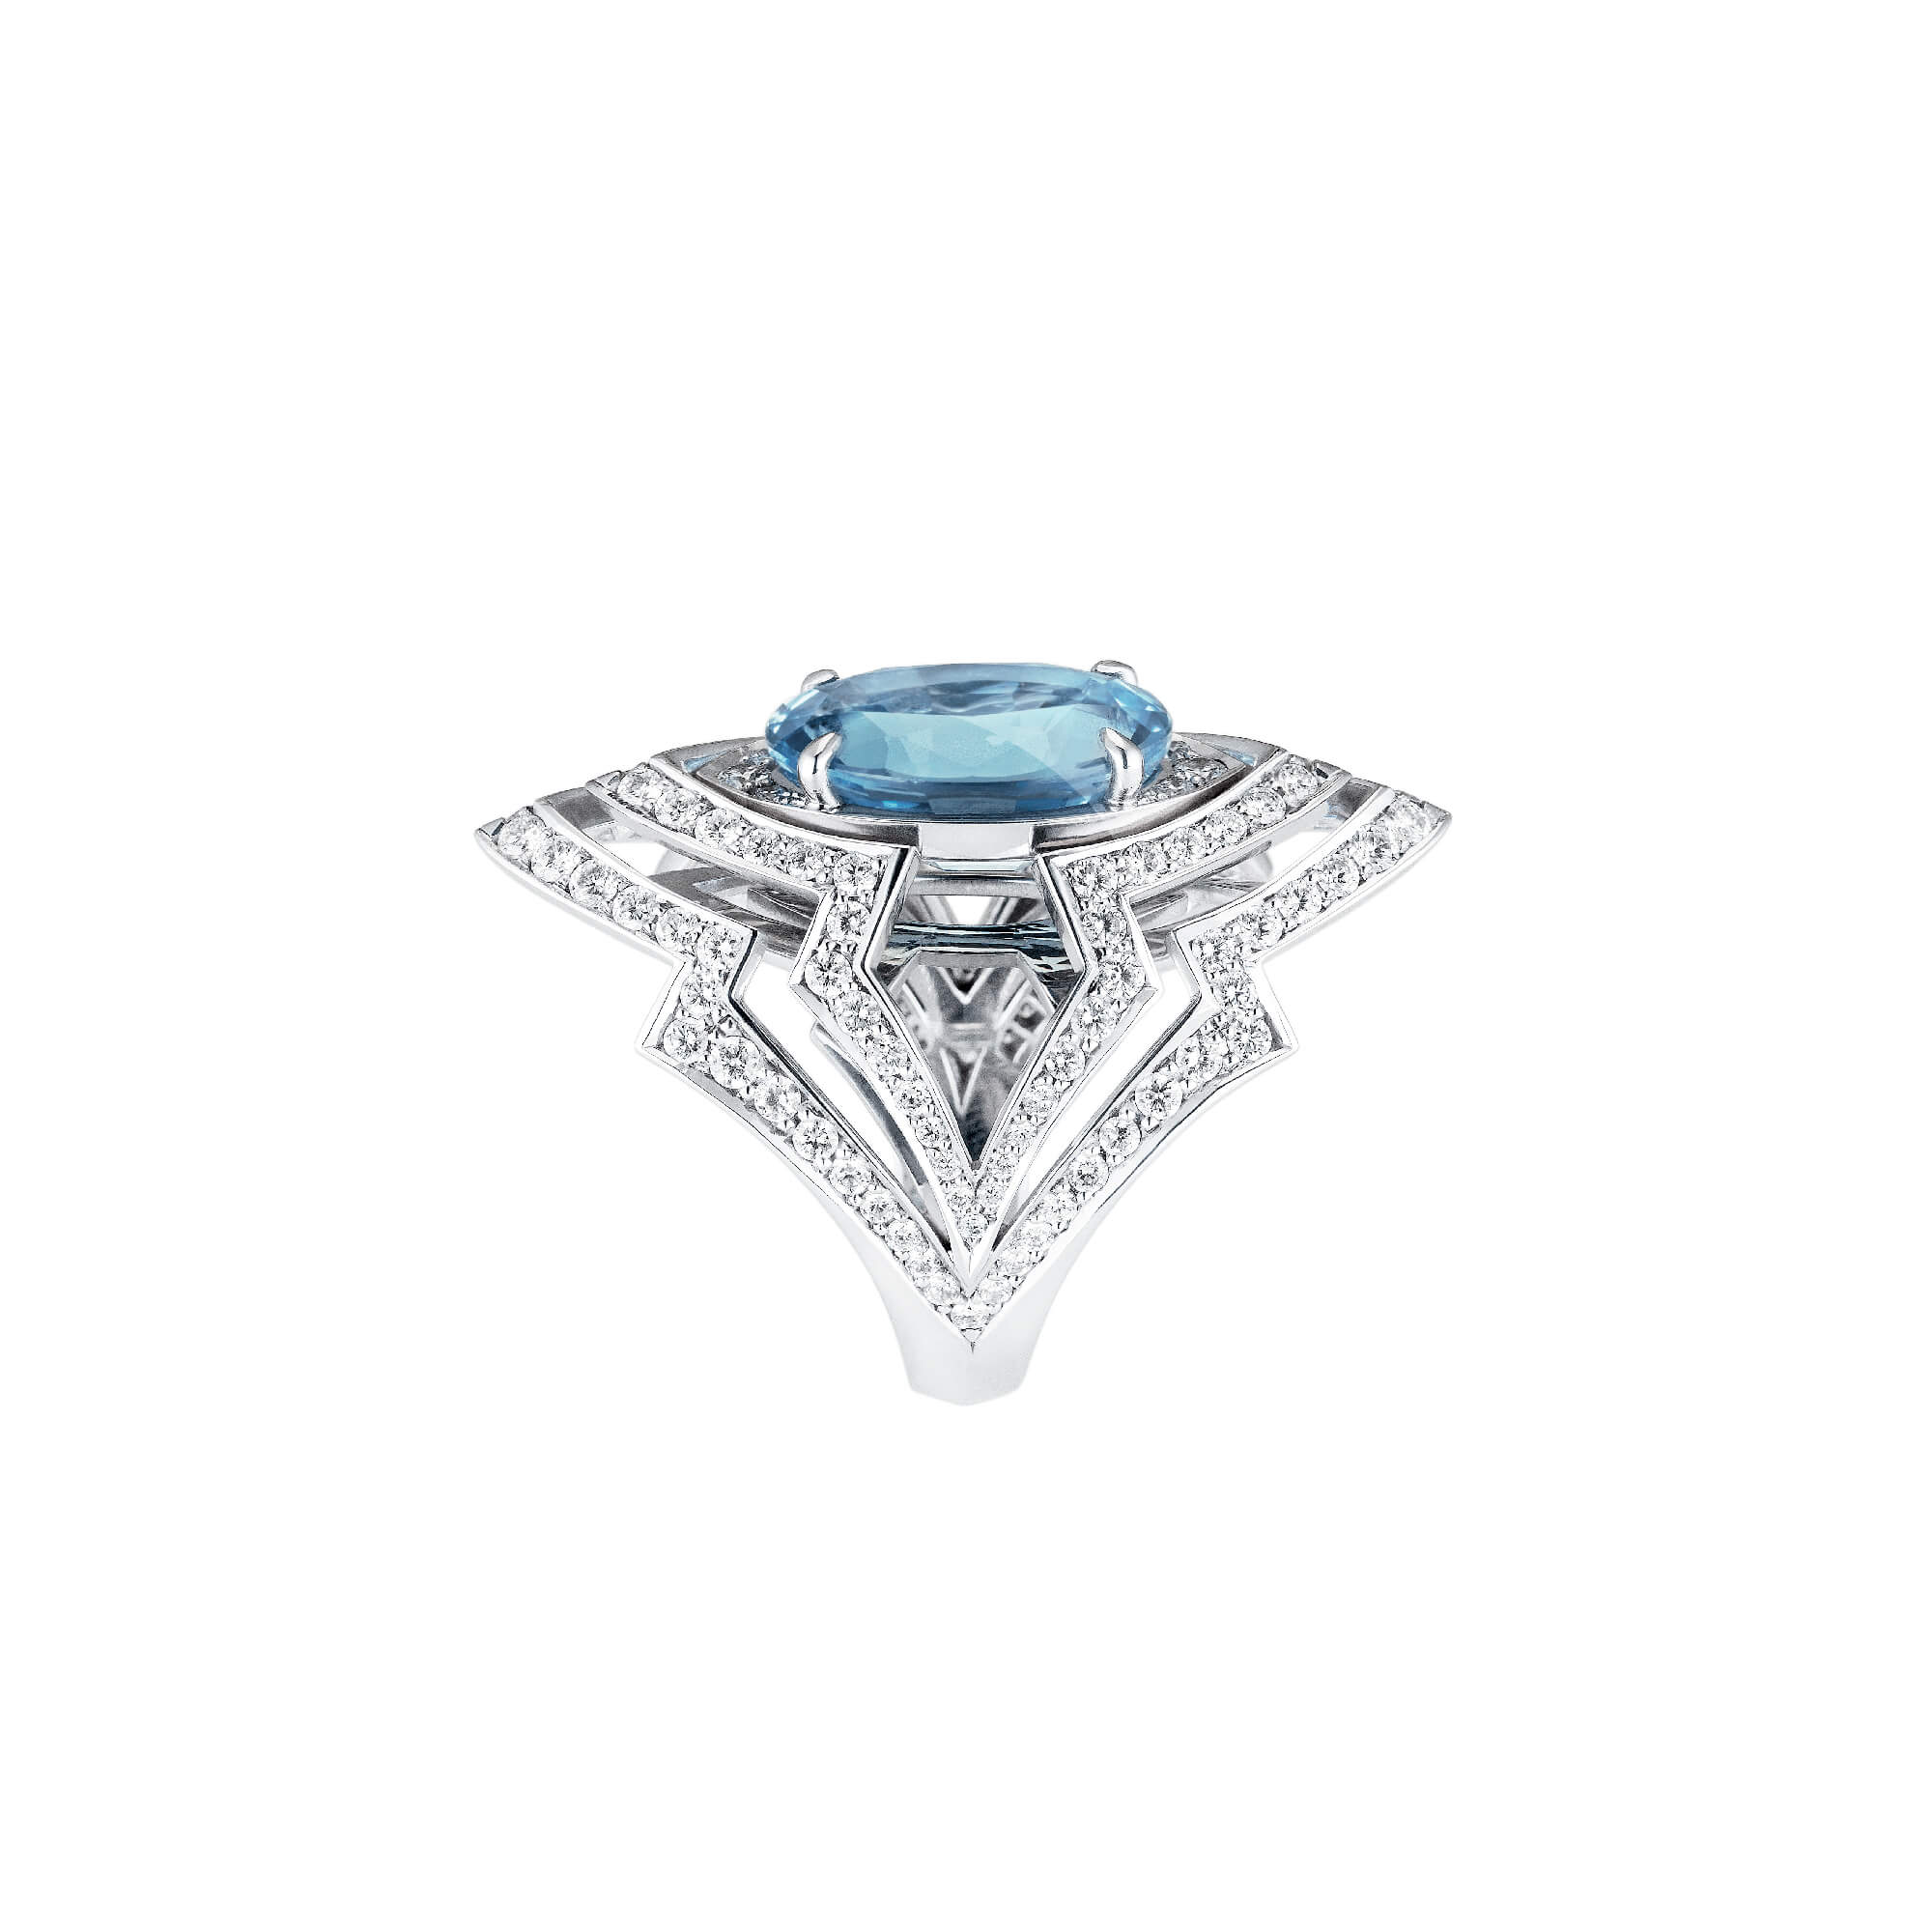 Aquamarine Couture 18ct White Gold Ring - Image 1 | Lady Stardust